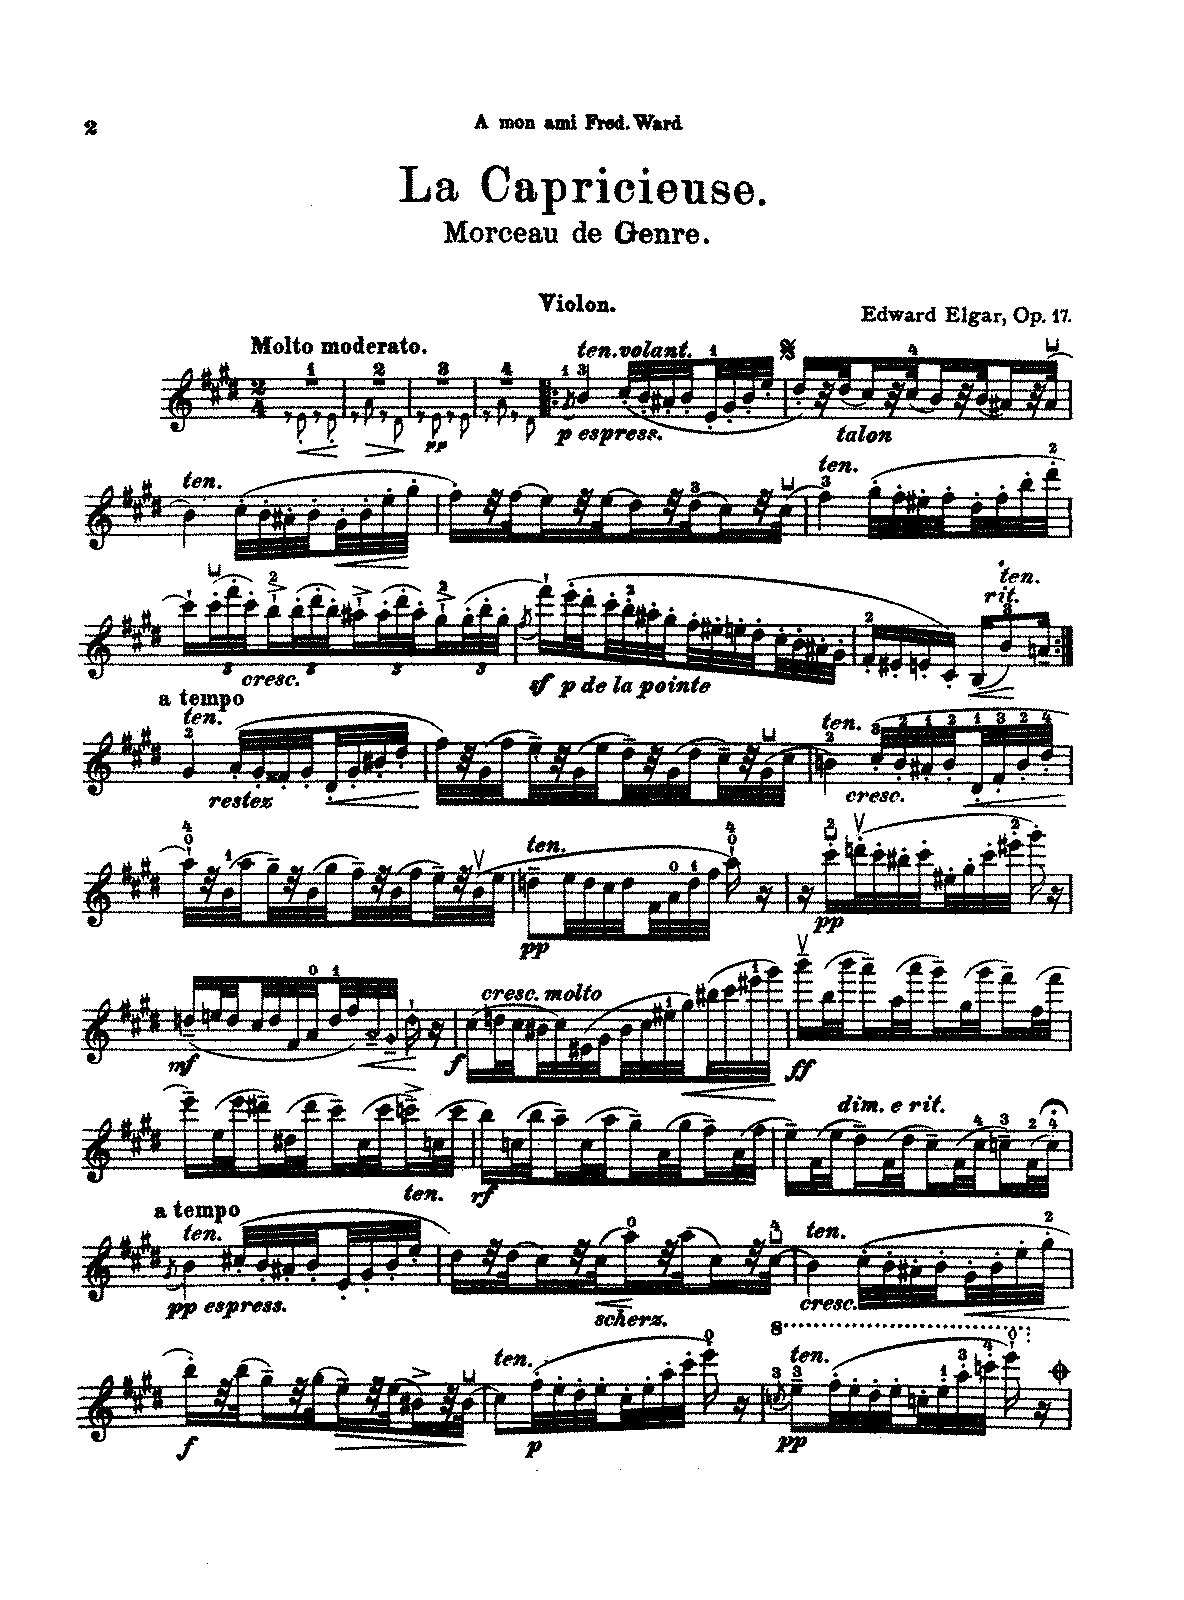 PMLP89641-Elgar - La Capricieuse, Op. 17 (violin and piano).pdf